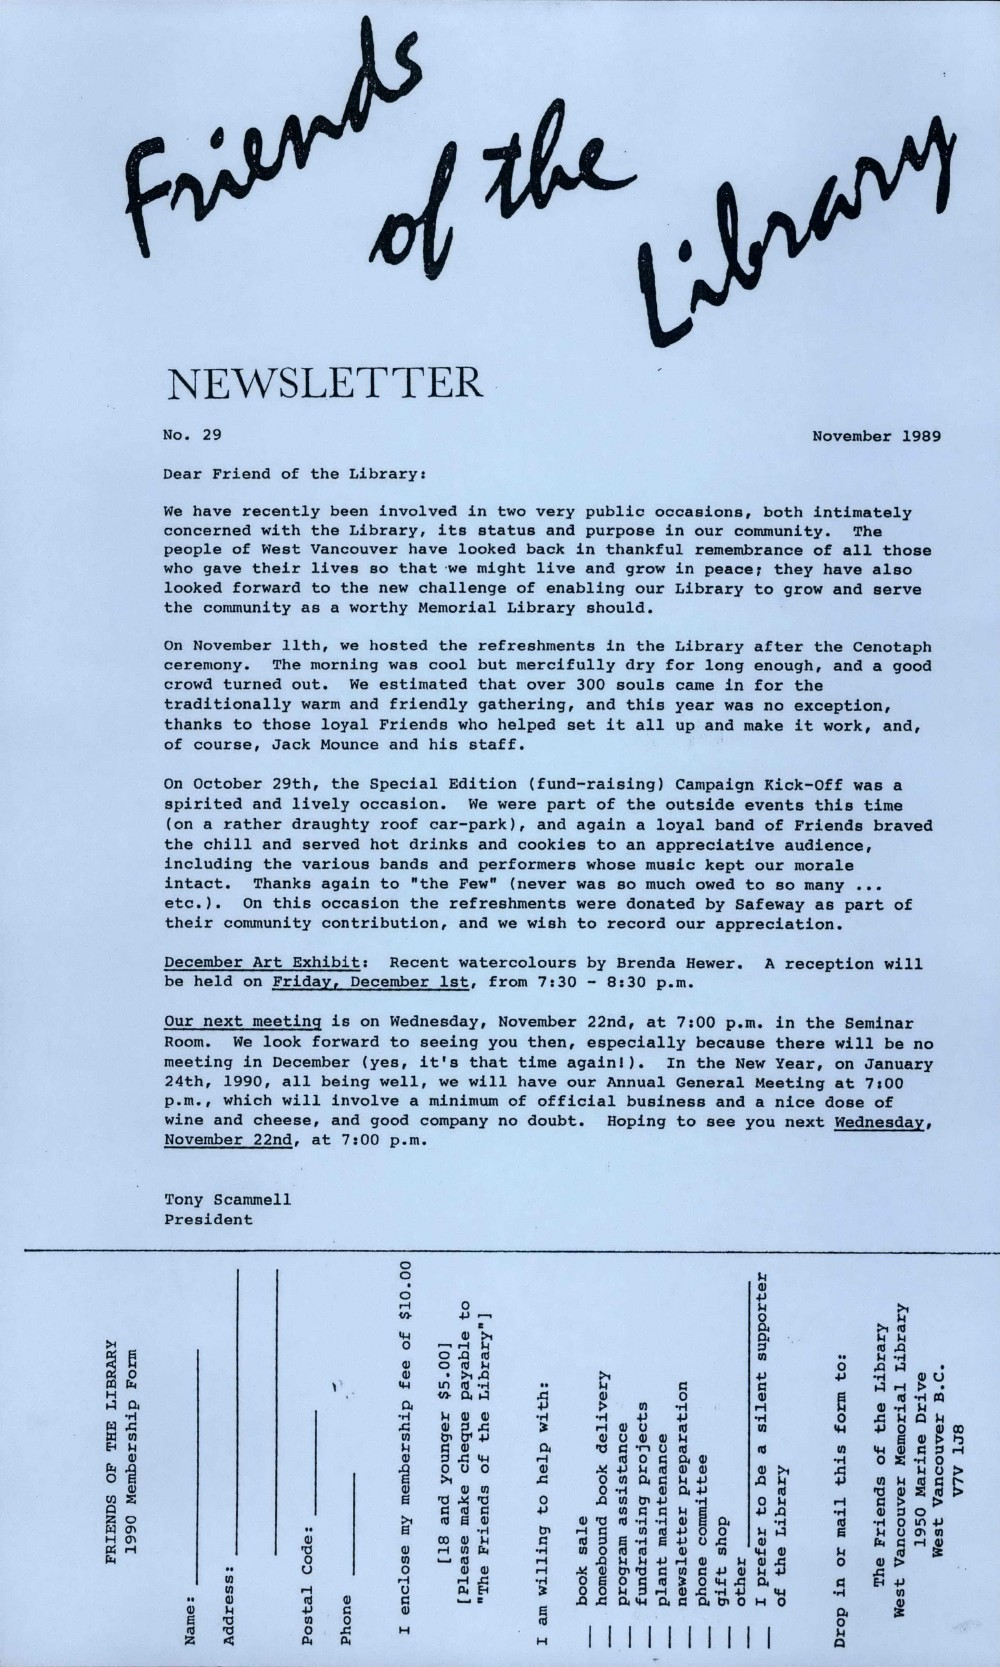 Friends of the Library Newsletter, November 1989